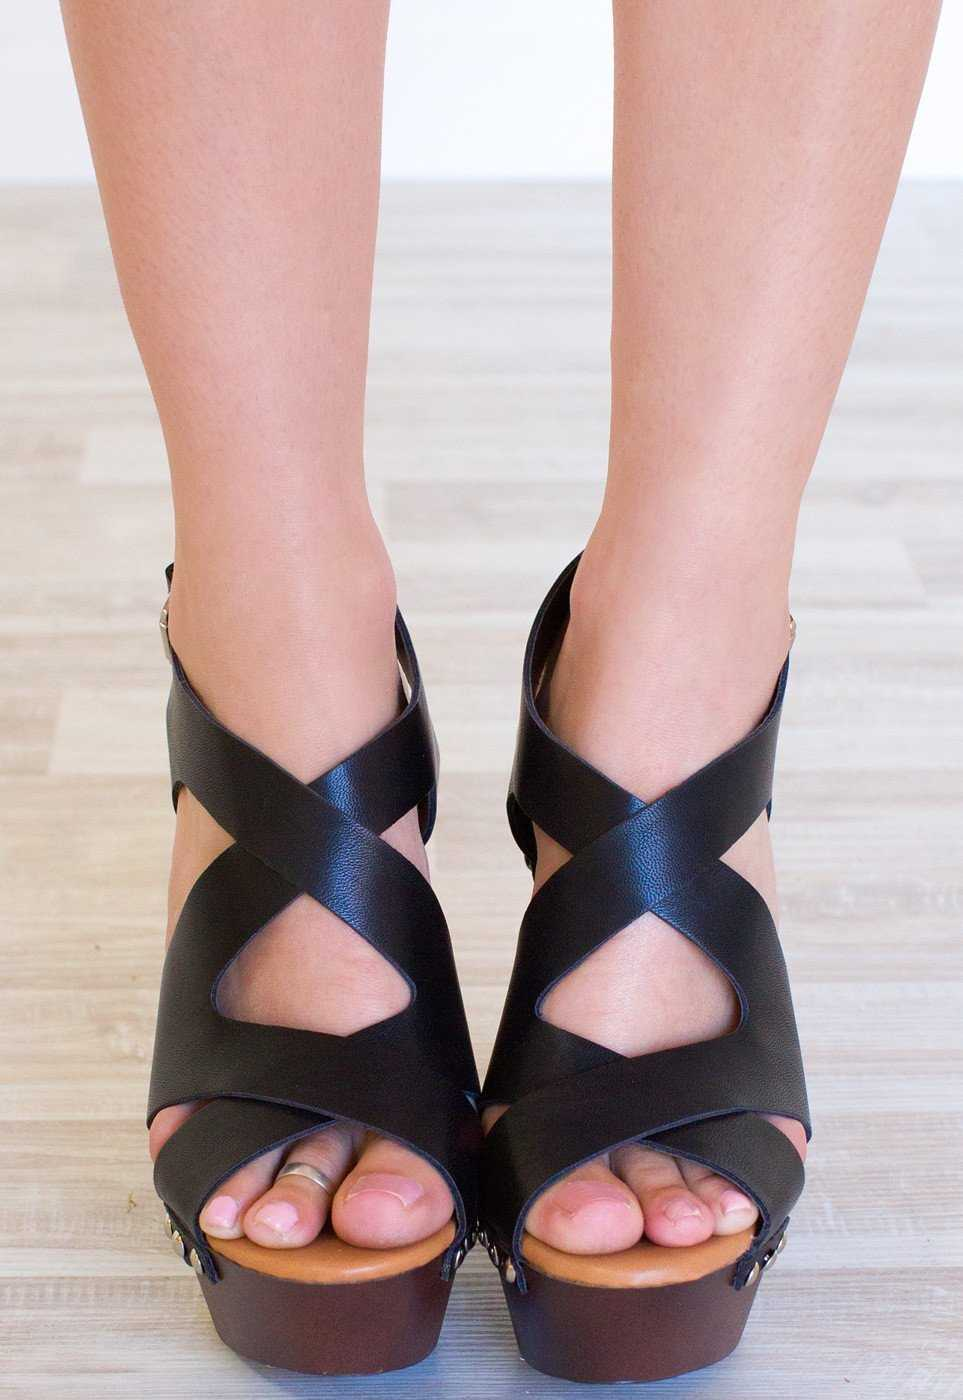 Shoes - Catalina Heels - Black